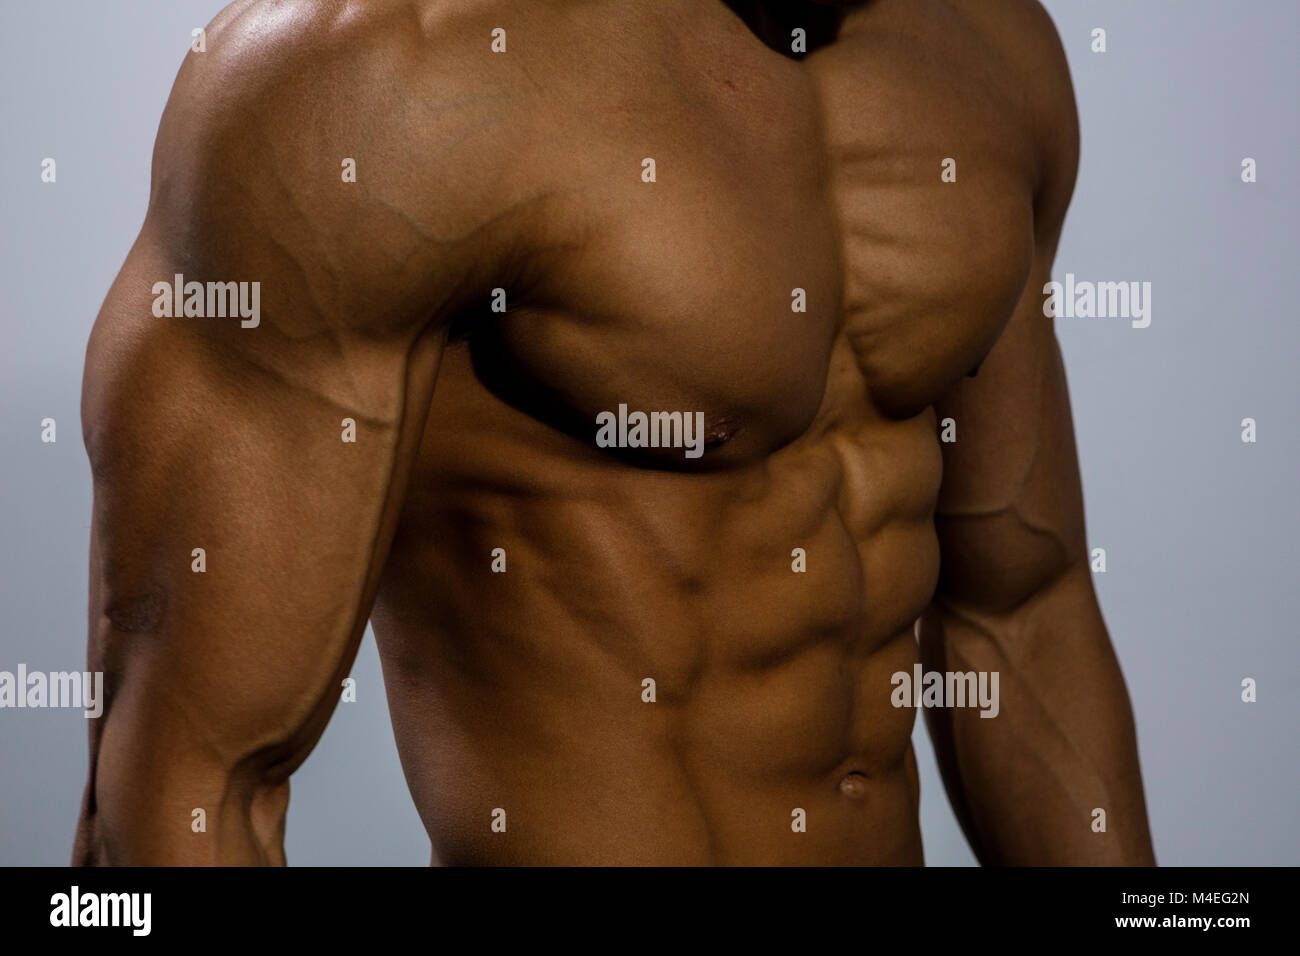 Ein fitness Modell Torso mit dem Brustmuskel eng gebogen. Close Up. Stockbild